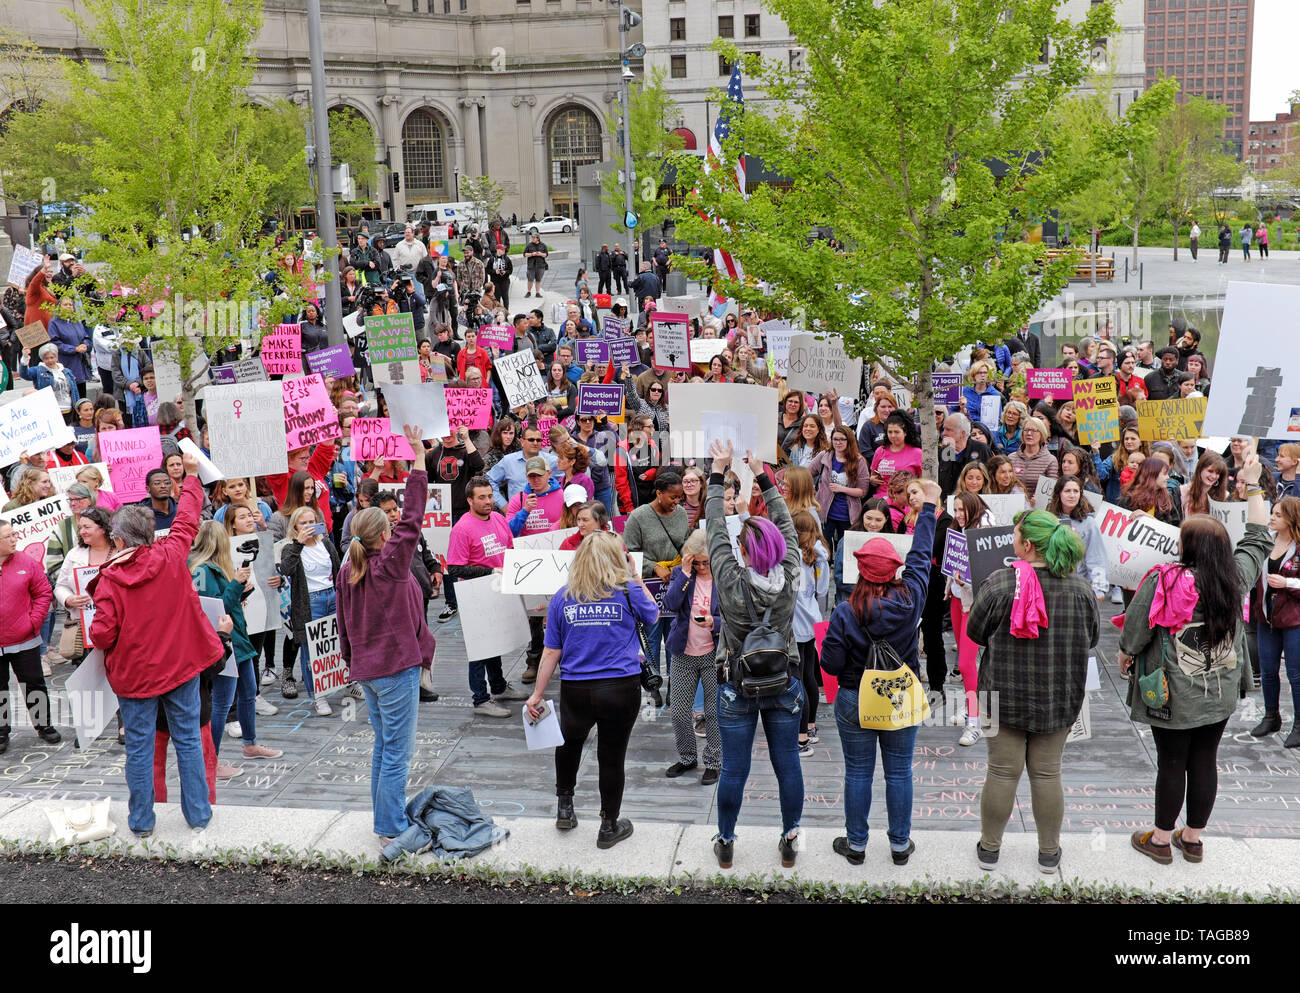 Pro-choice demonstrators protest in Public Square in downtown Cleveland, Ohio, USA against changes to Ohio abortion laws and reproductive rights. Stock Photo